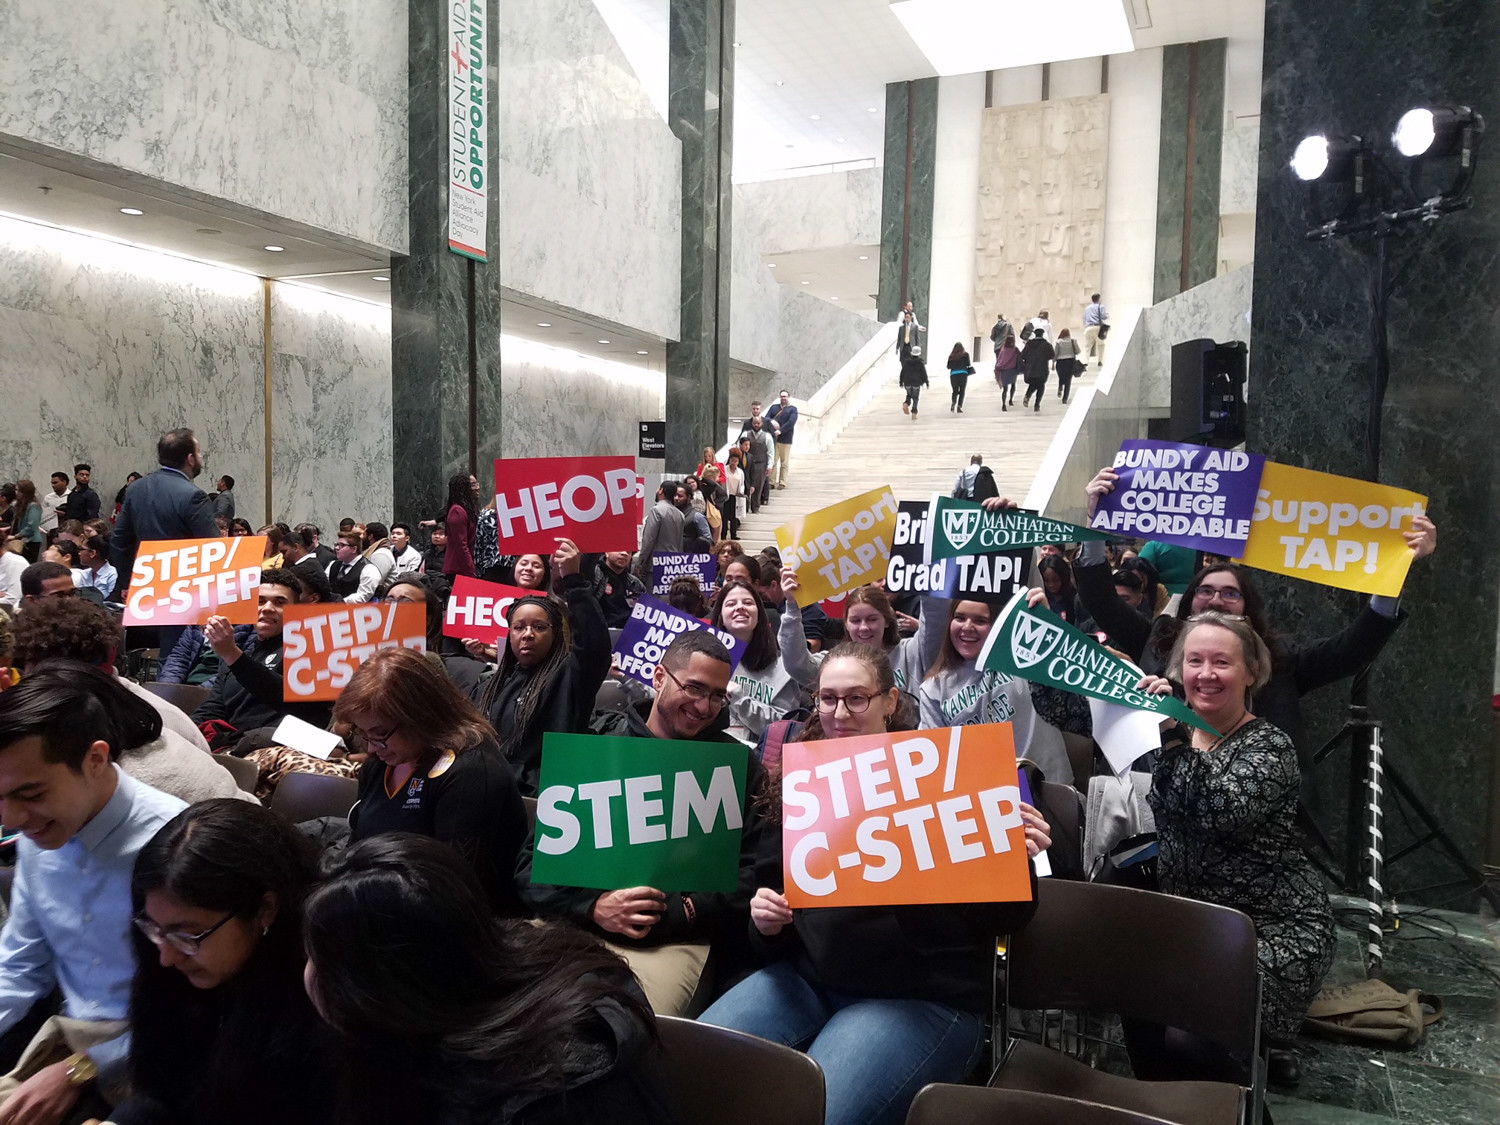 Students from more than 60 private schools, including Manhattan College and the College of Mount Saint Vincent, traveled to Albany Feb. 14 to advocate for student aid. This year's push was in favor of Bundy funding, which encourages schools to help students make it to the degree stage.